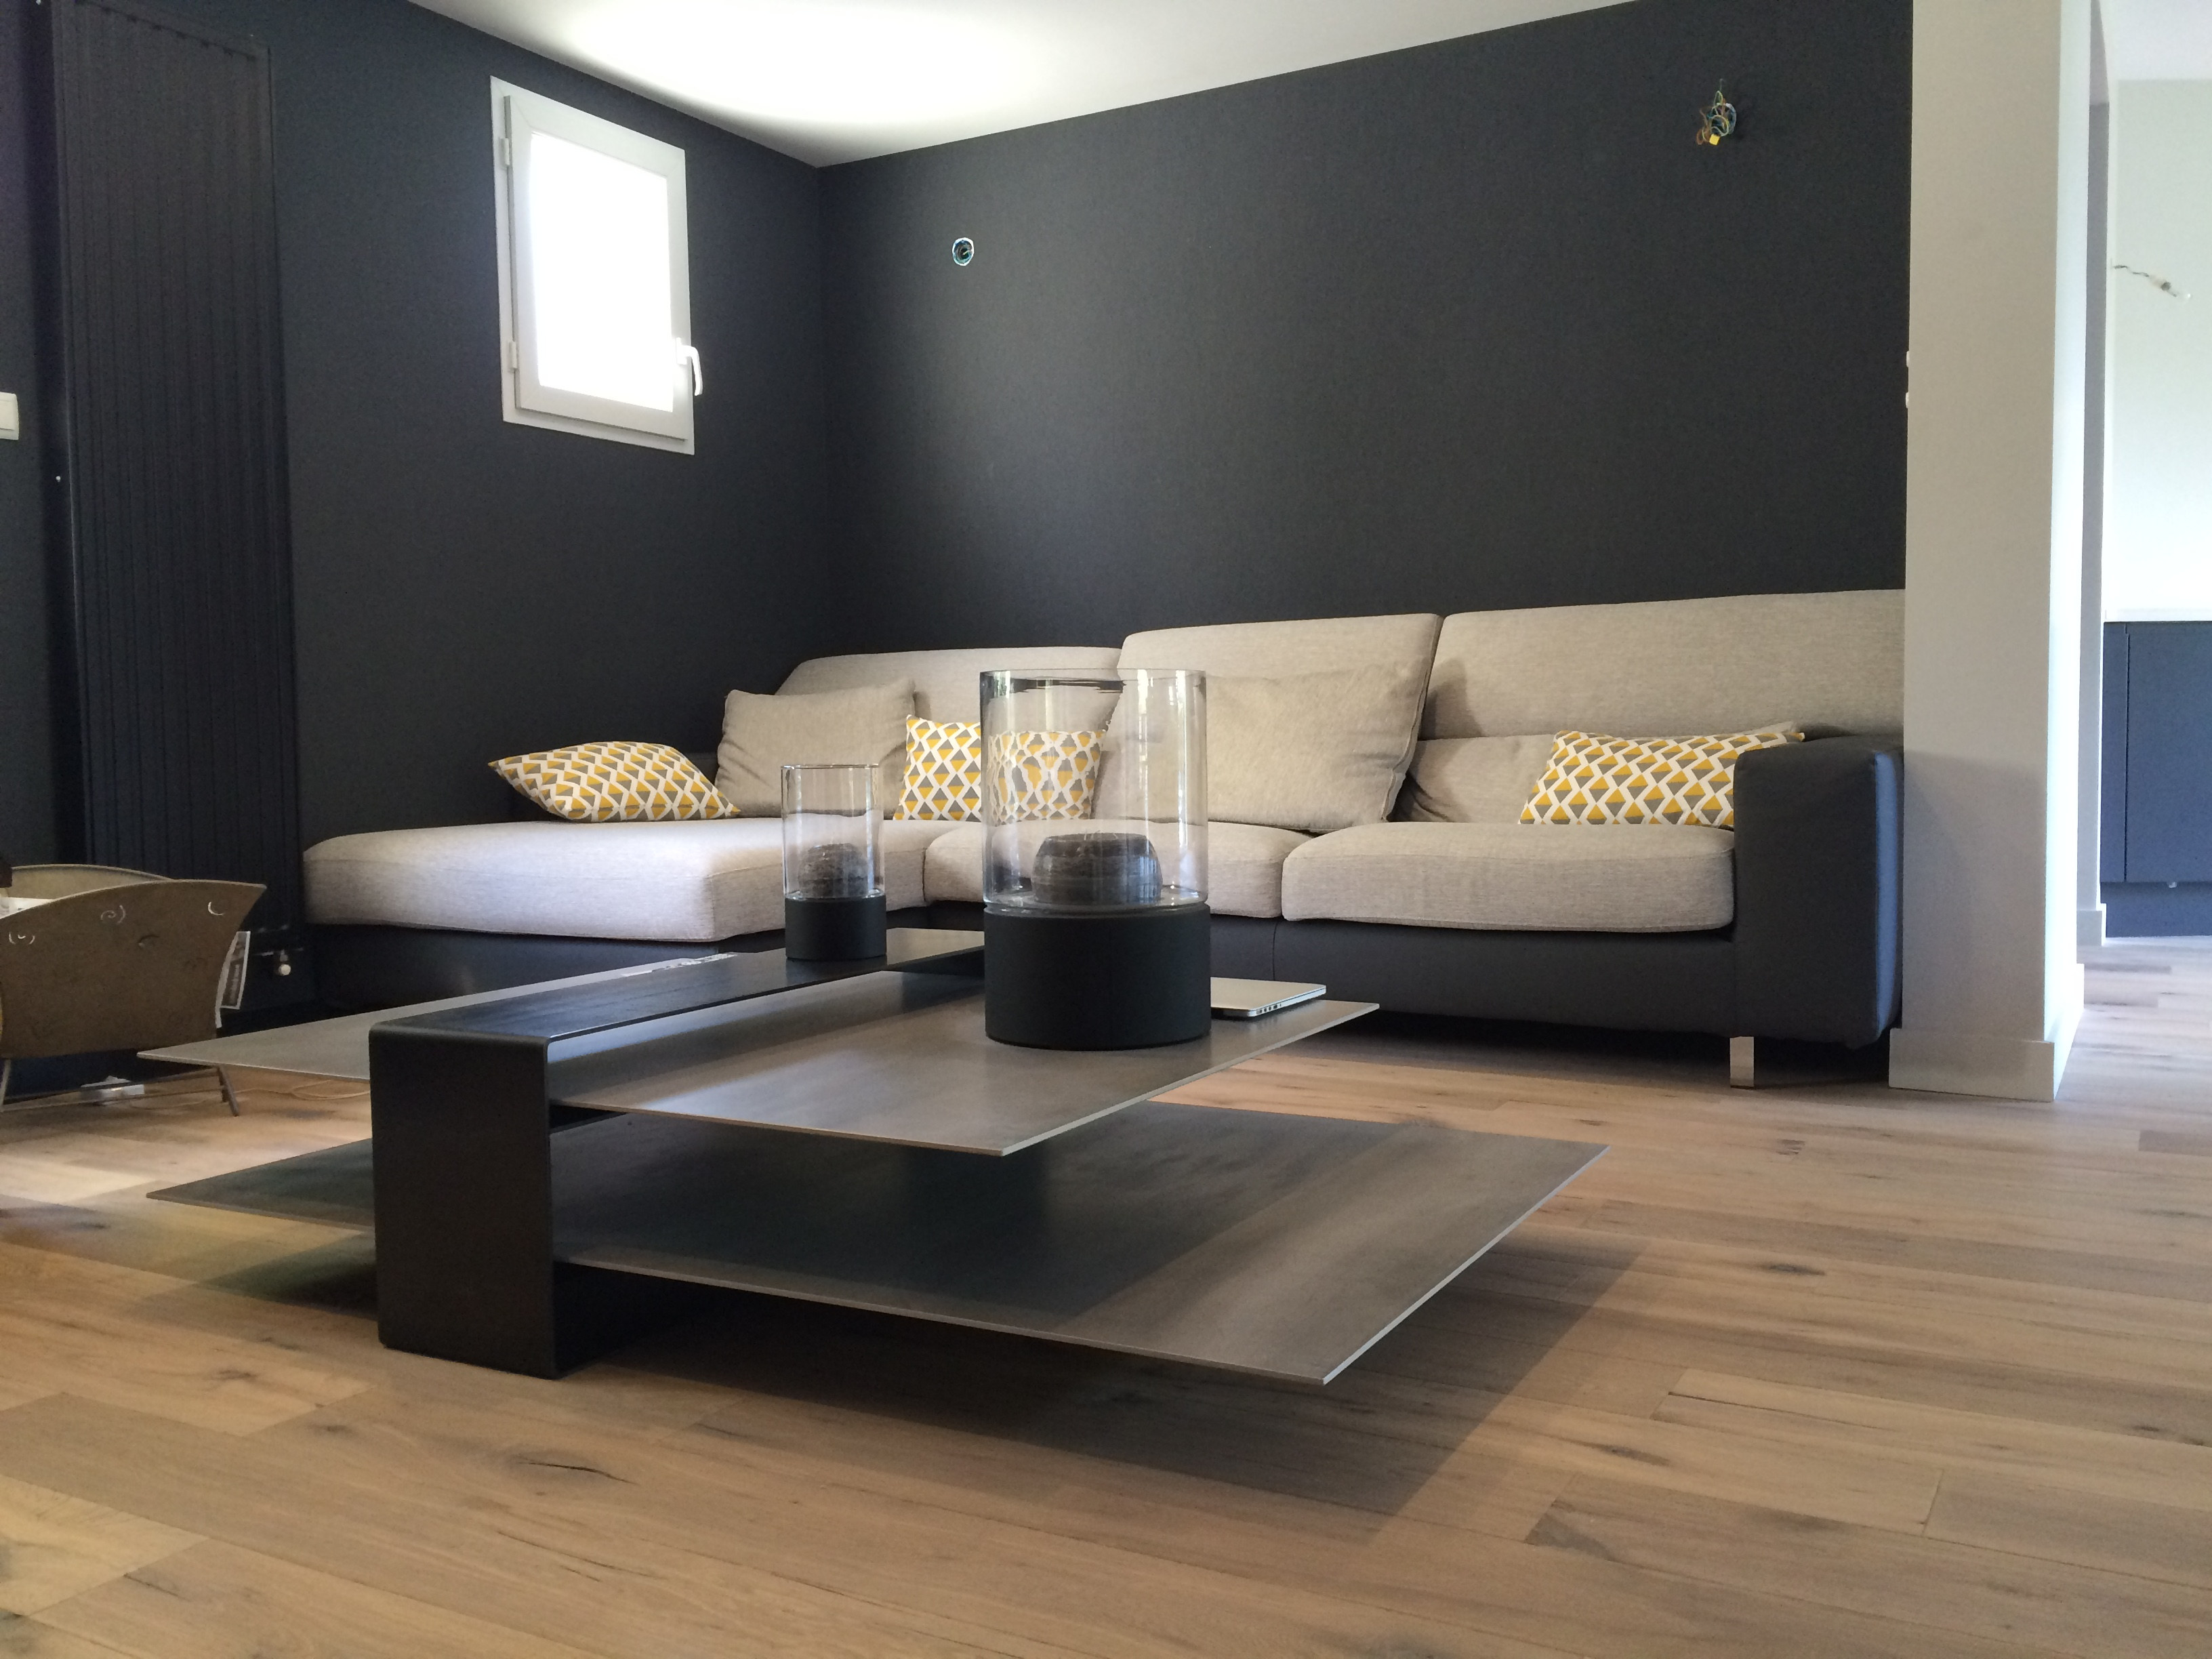 usueldesign architecte d 39 interieur vannes accueil r novation. Black Bedroom Furniture Sets. Home Design Ideas